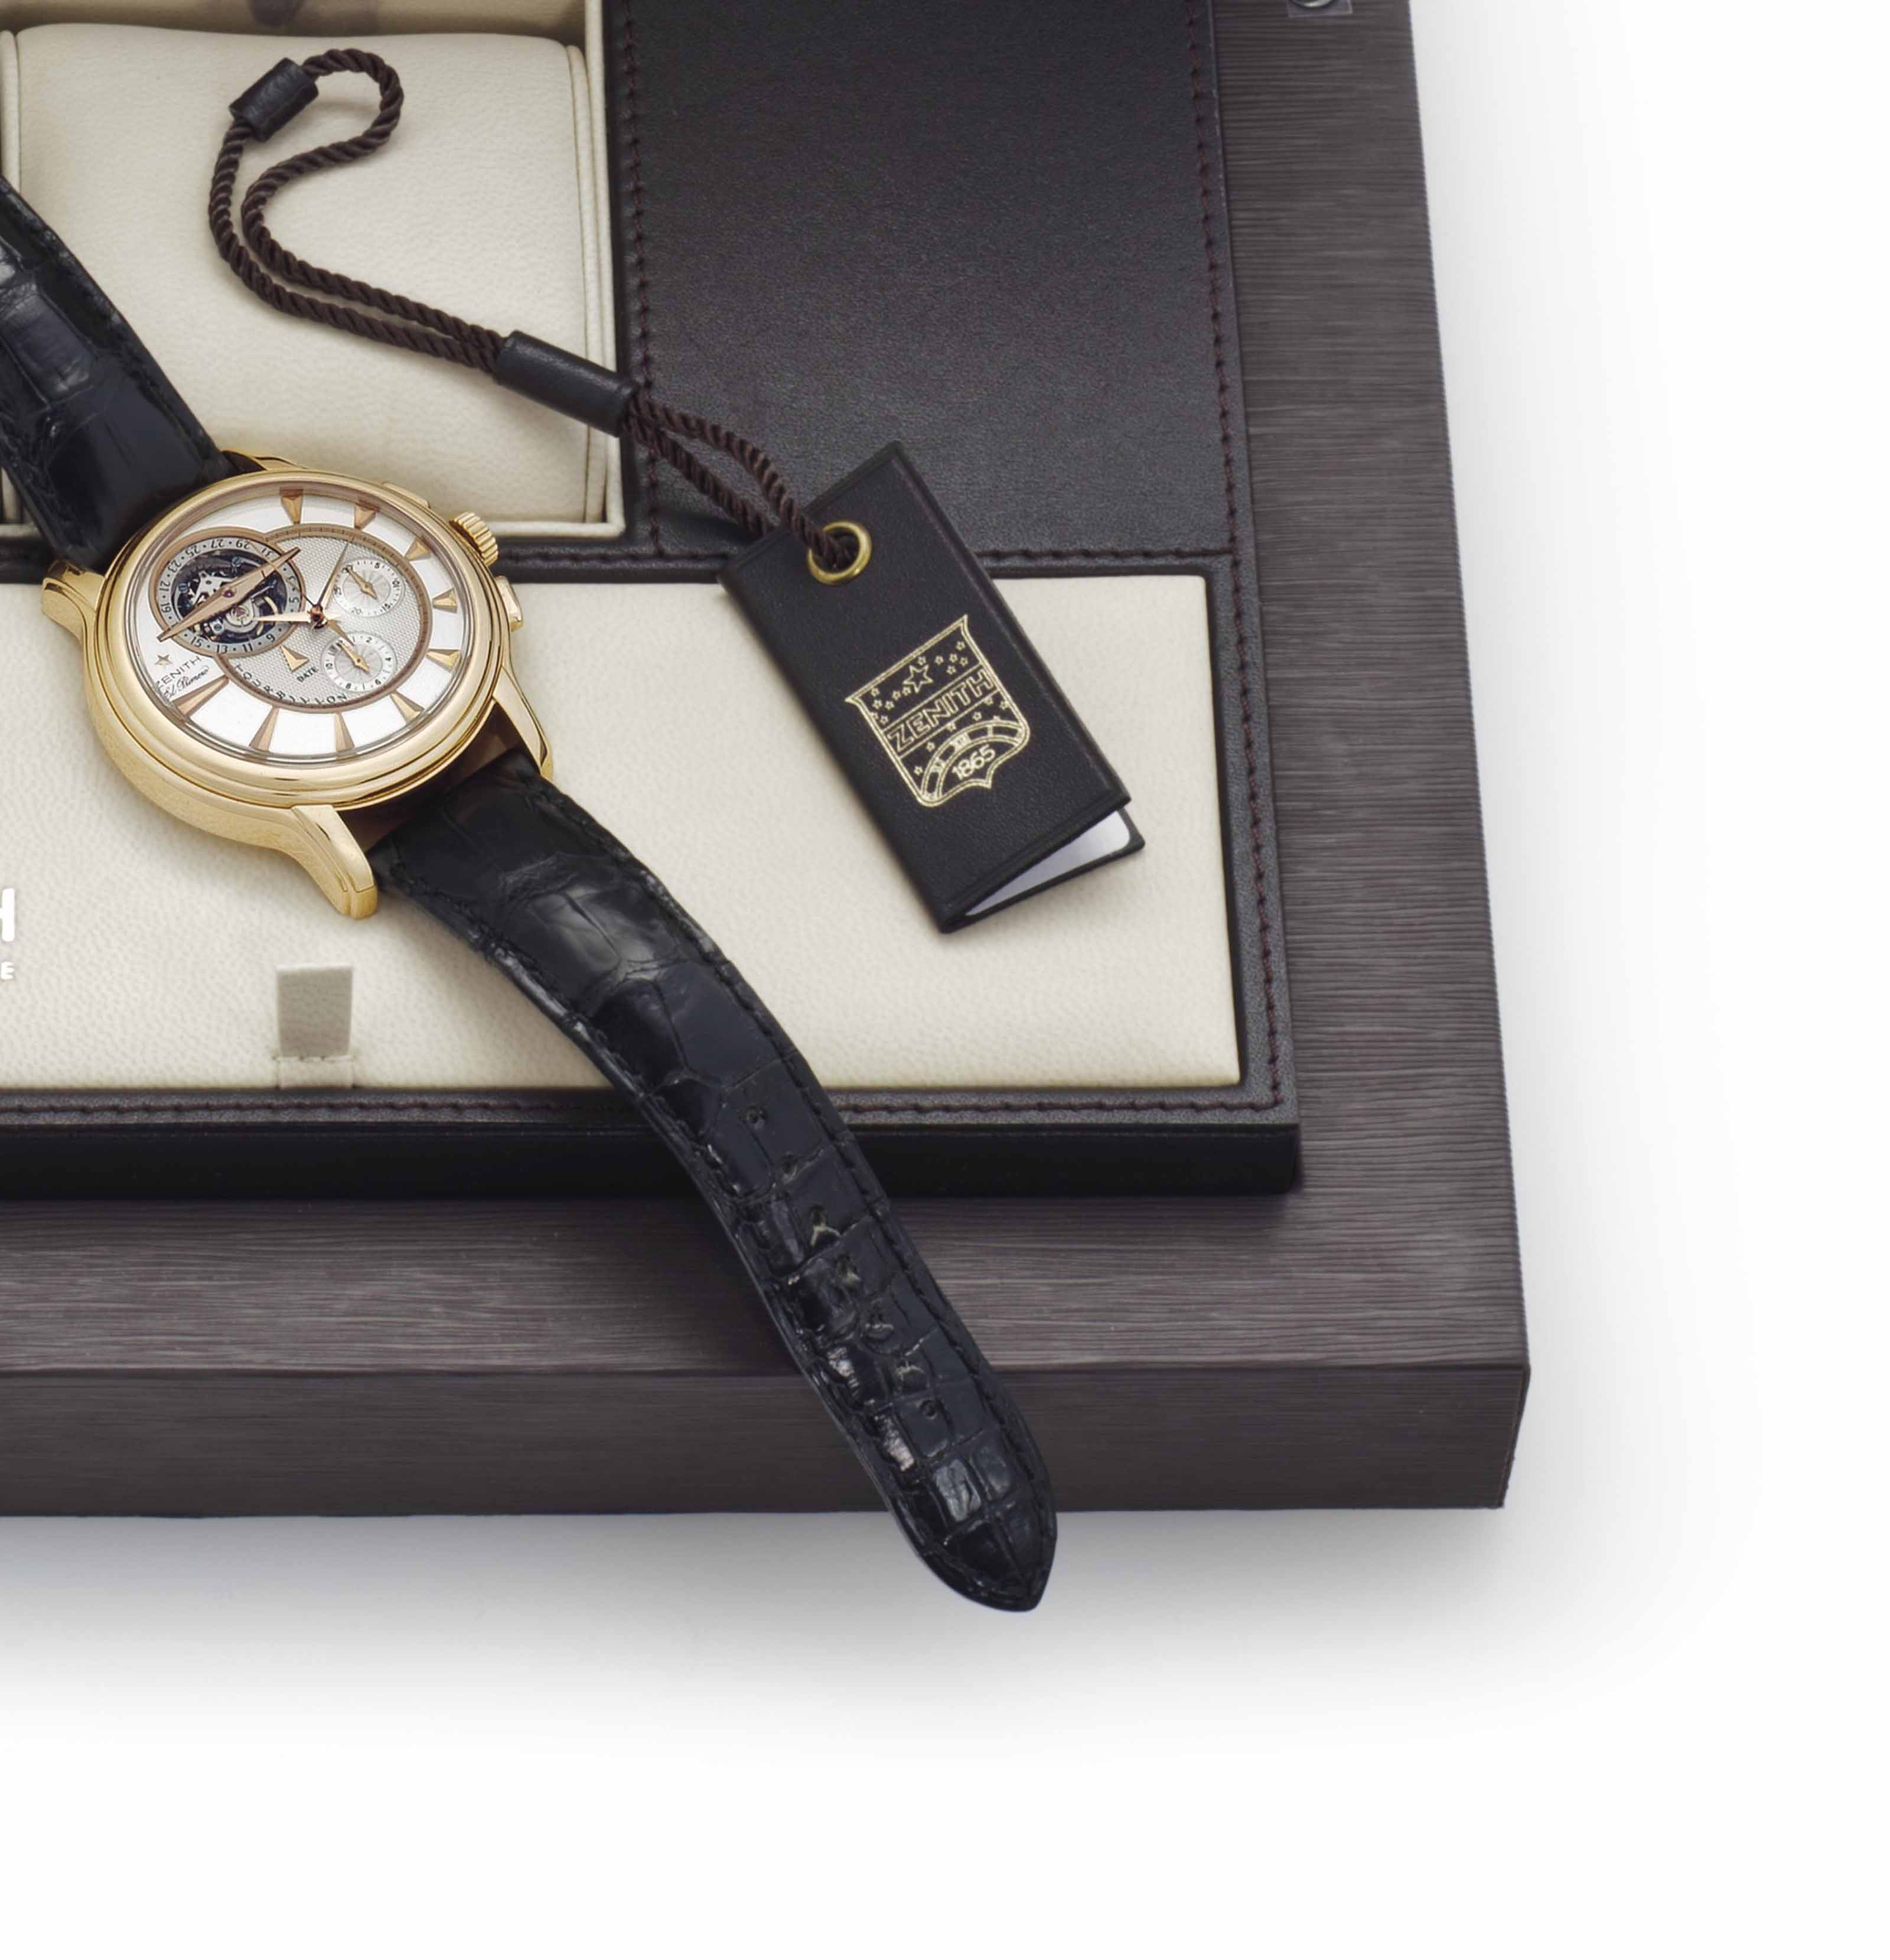 Zenith. A Limited Edition Very